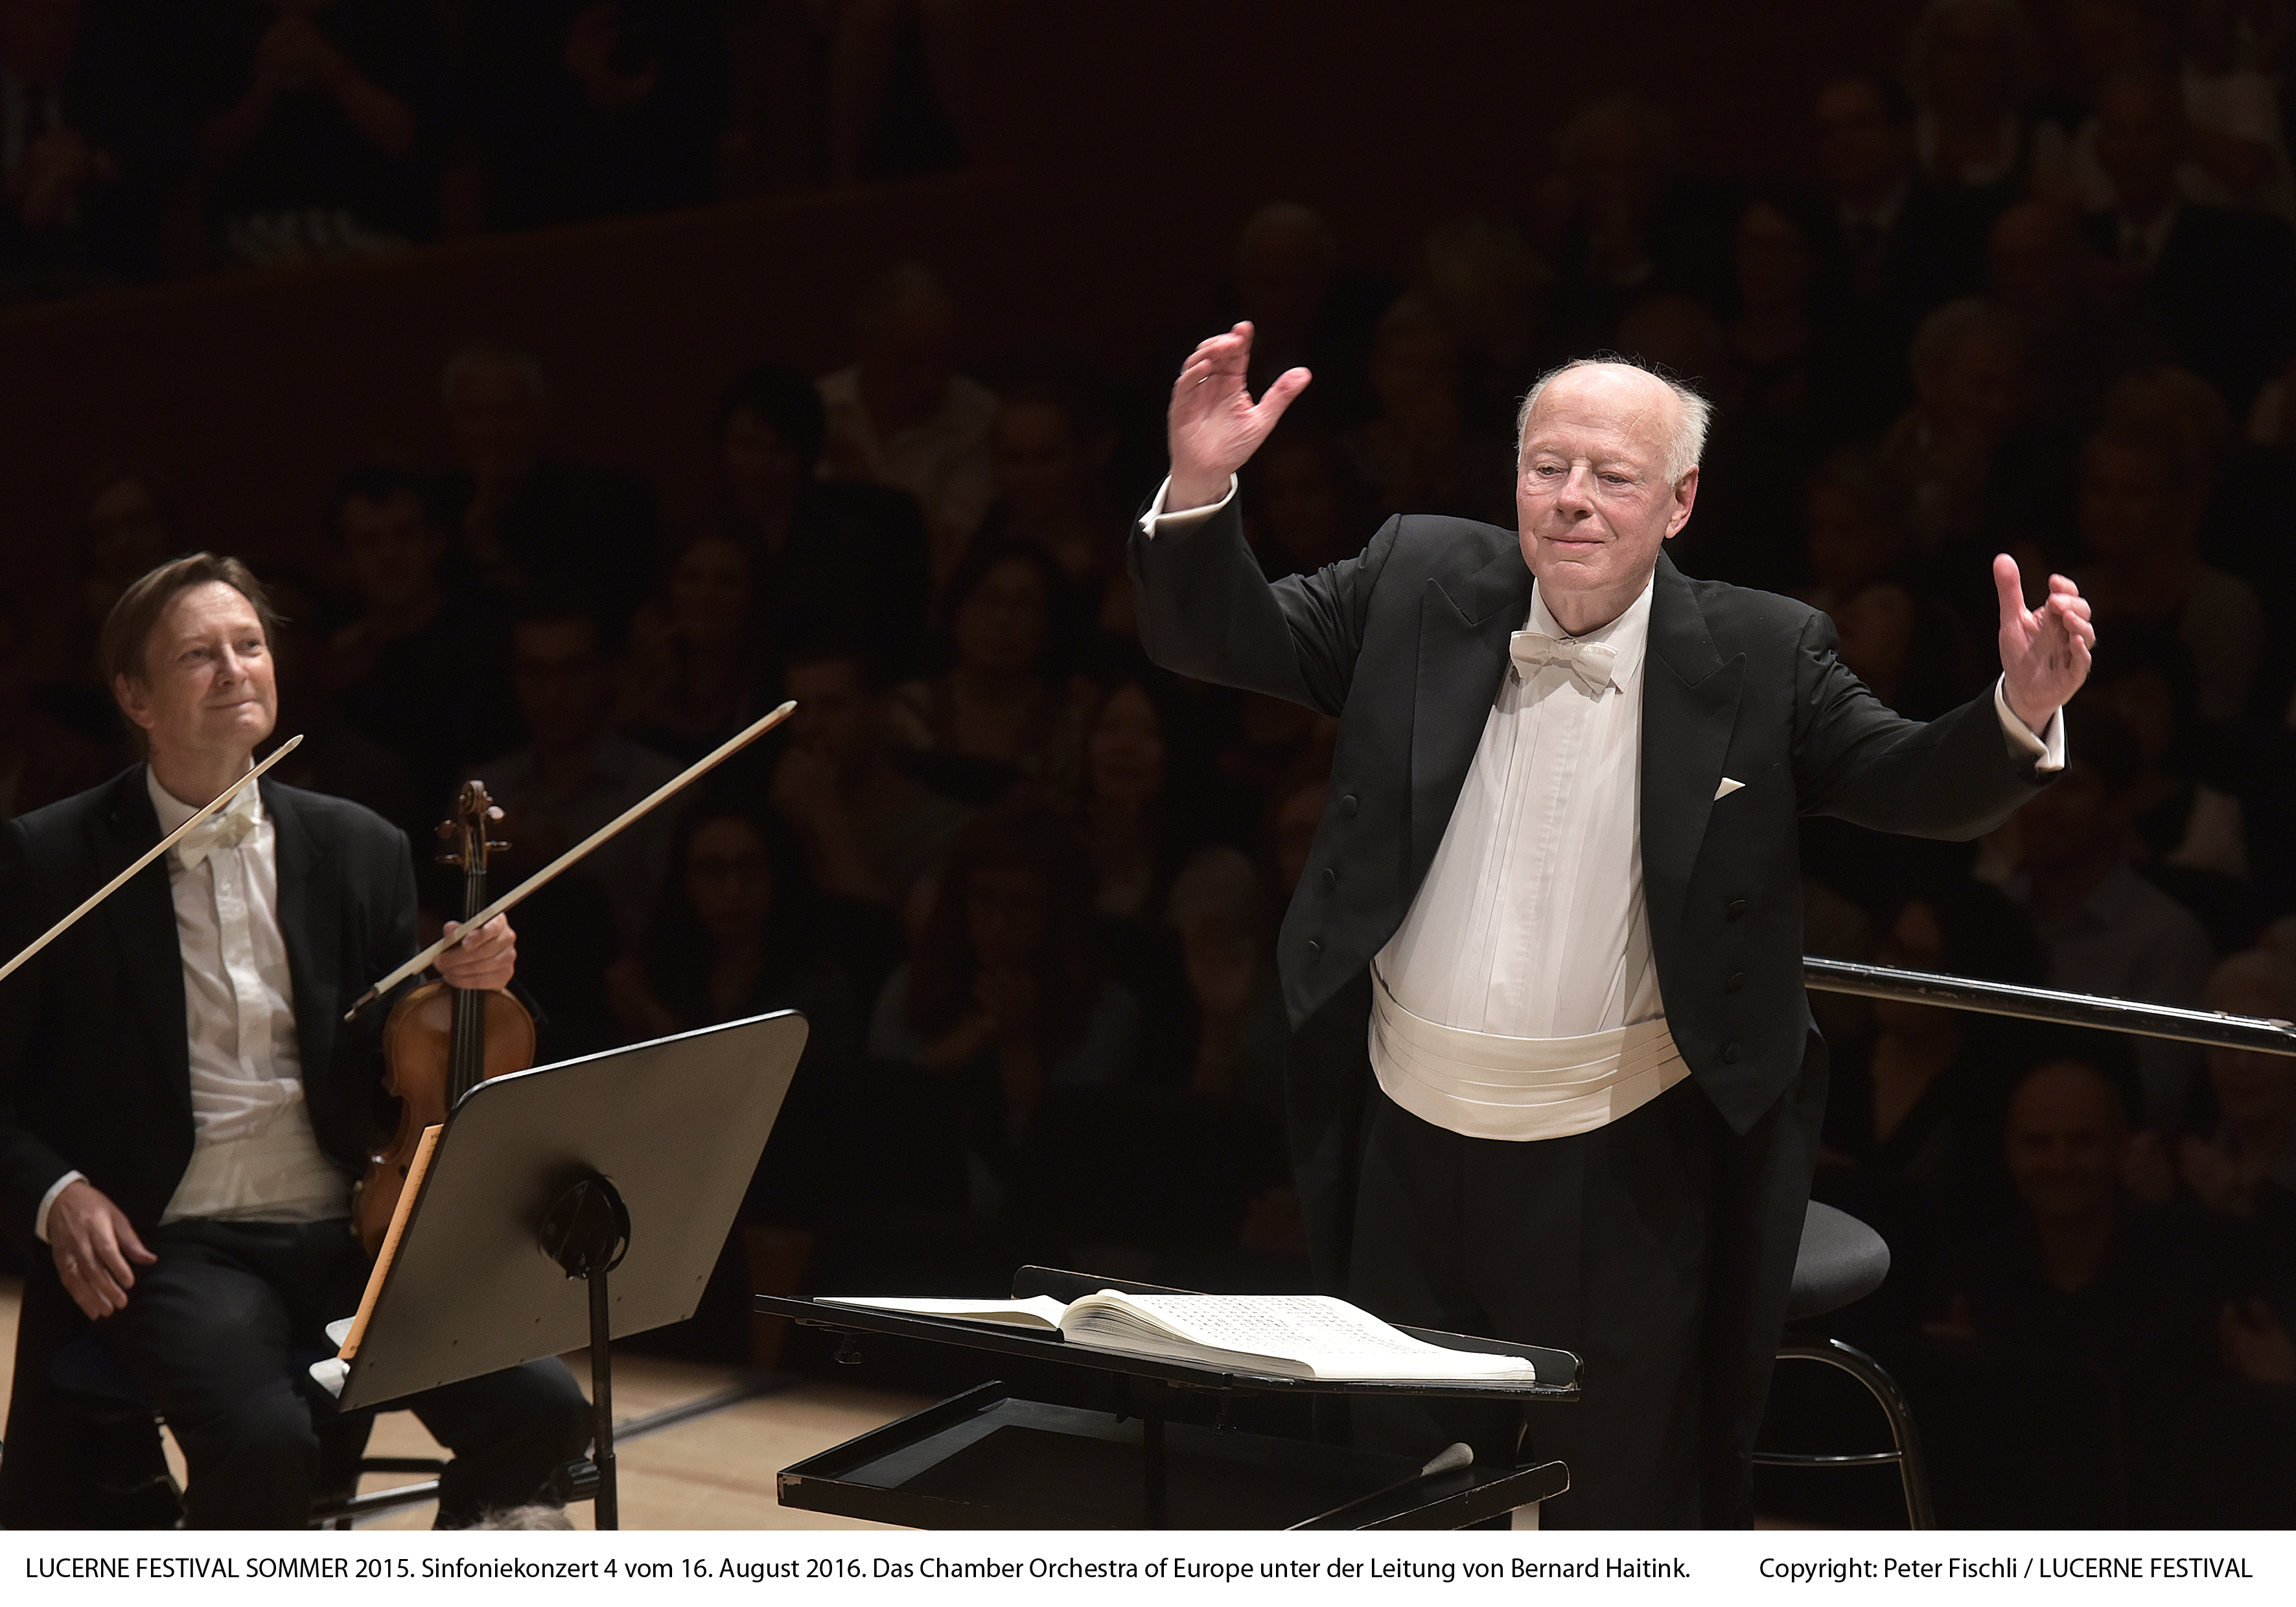 Caption: Bernard Haitink and the Chamber Orchestra of Europe, Credit: Peter Fischli/Lucerne Festival